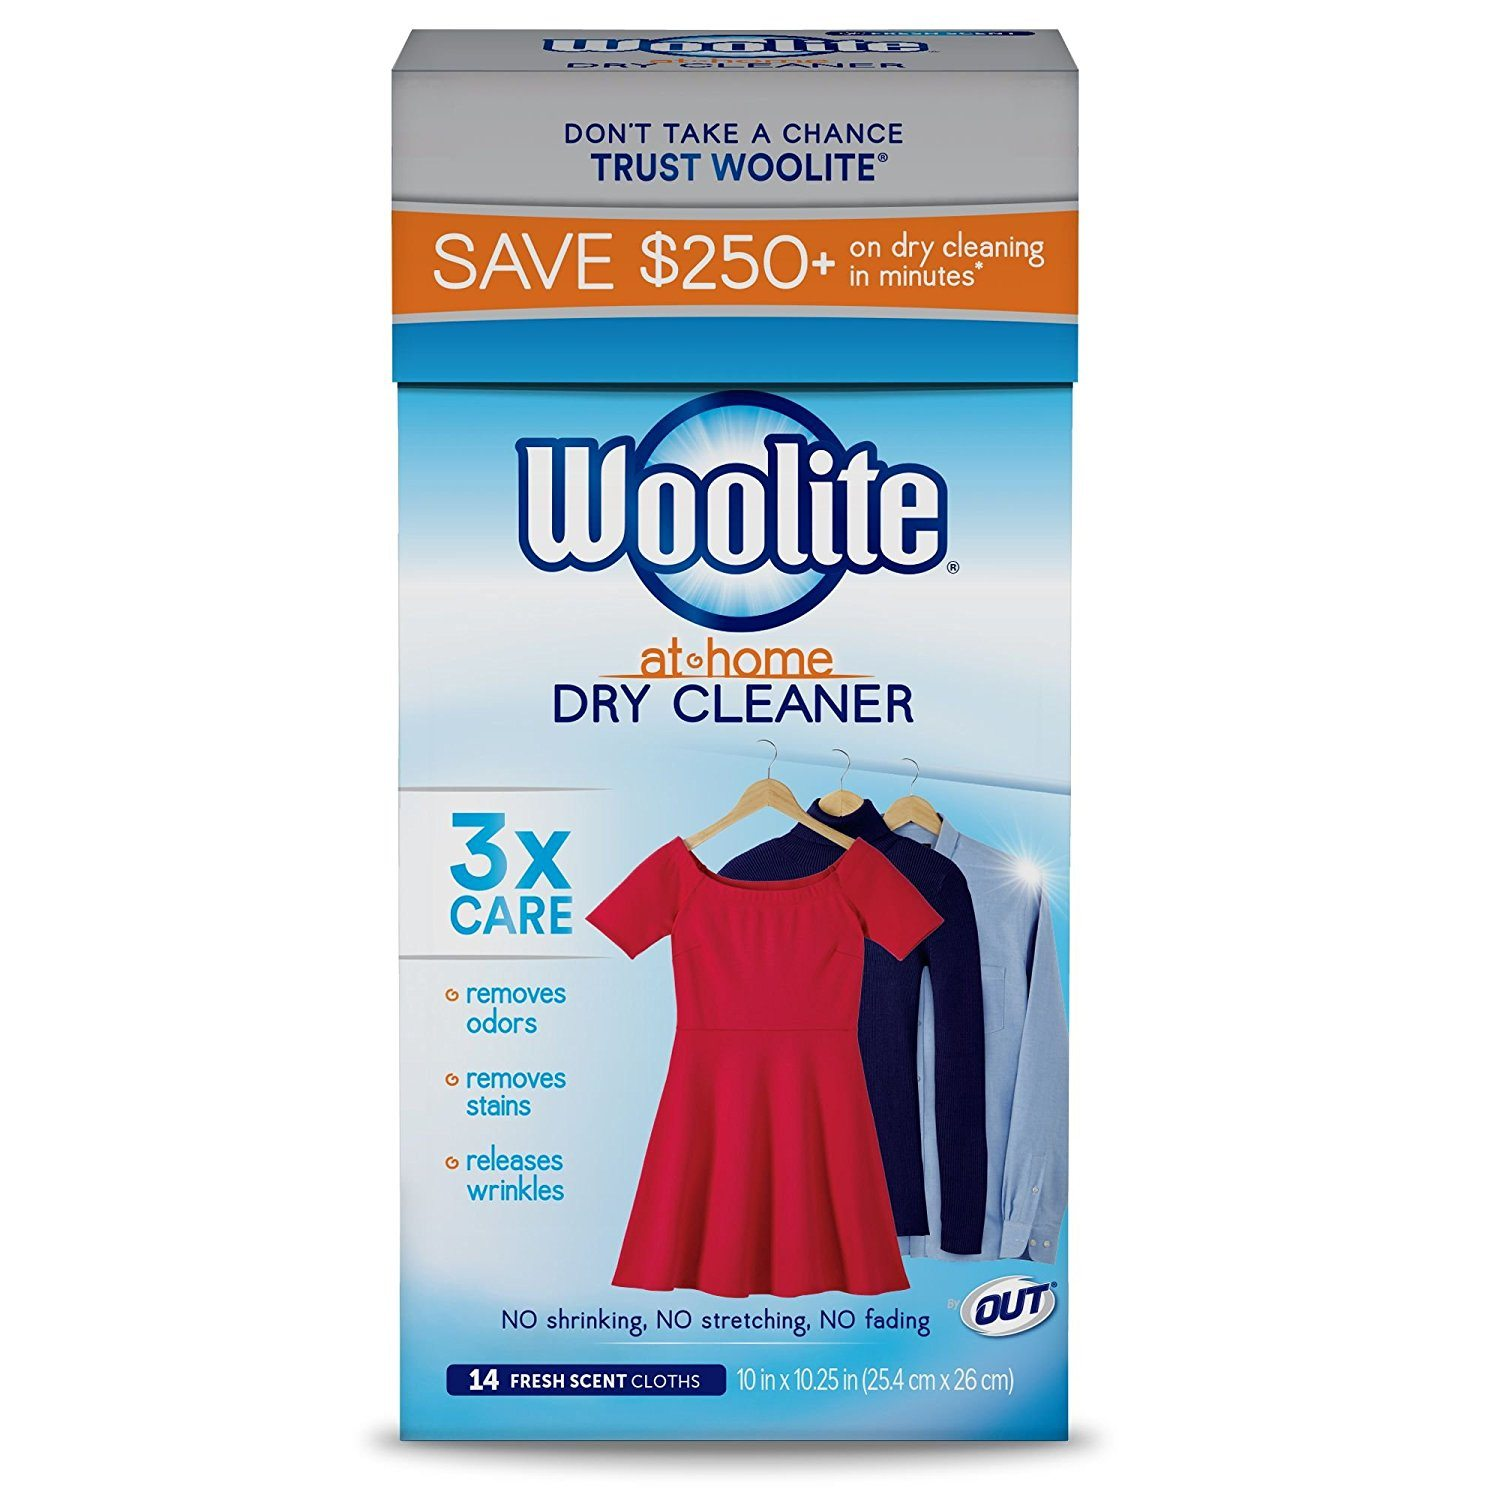 Woolite dry cleaning kit